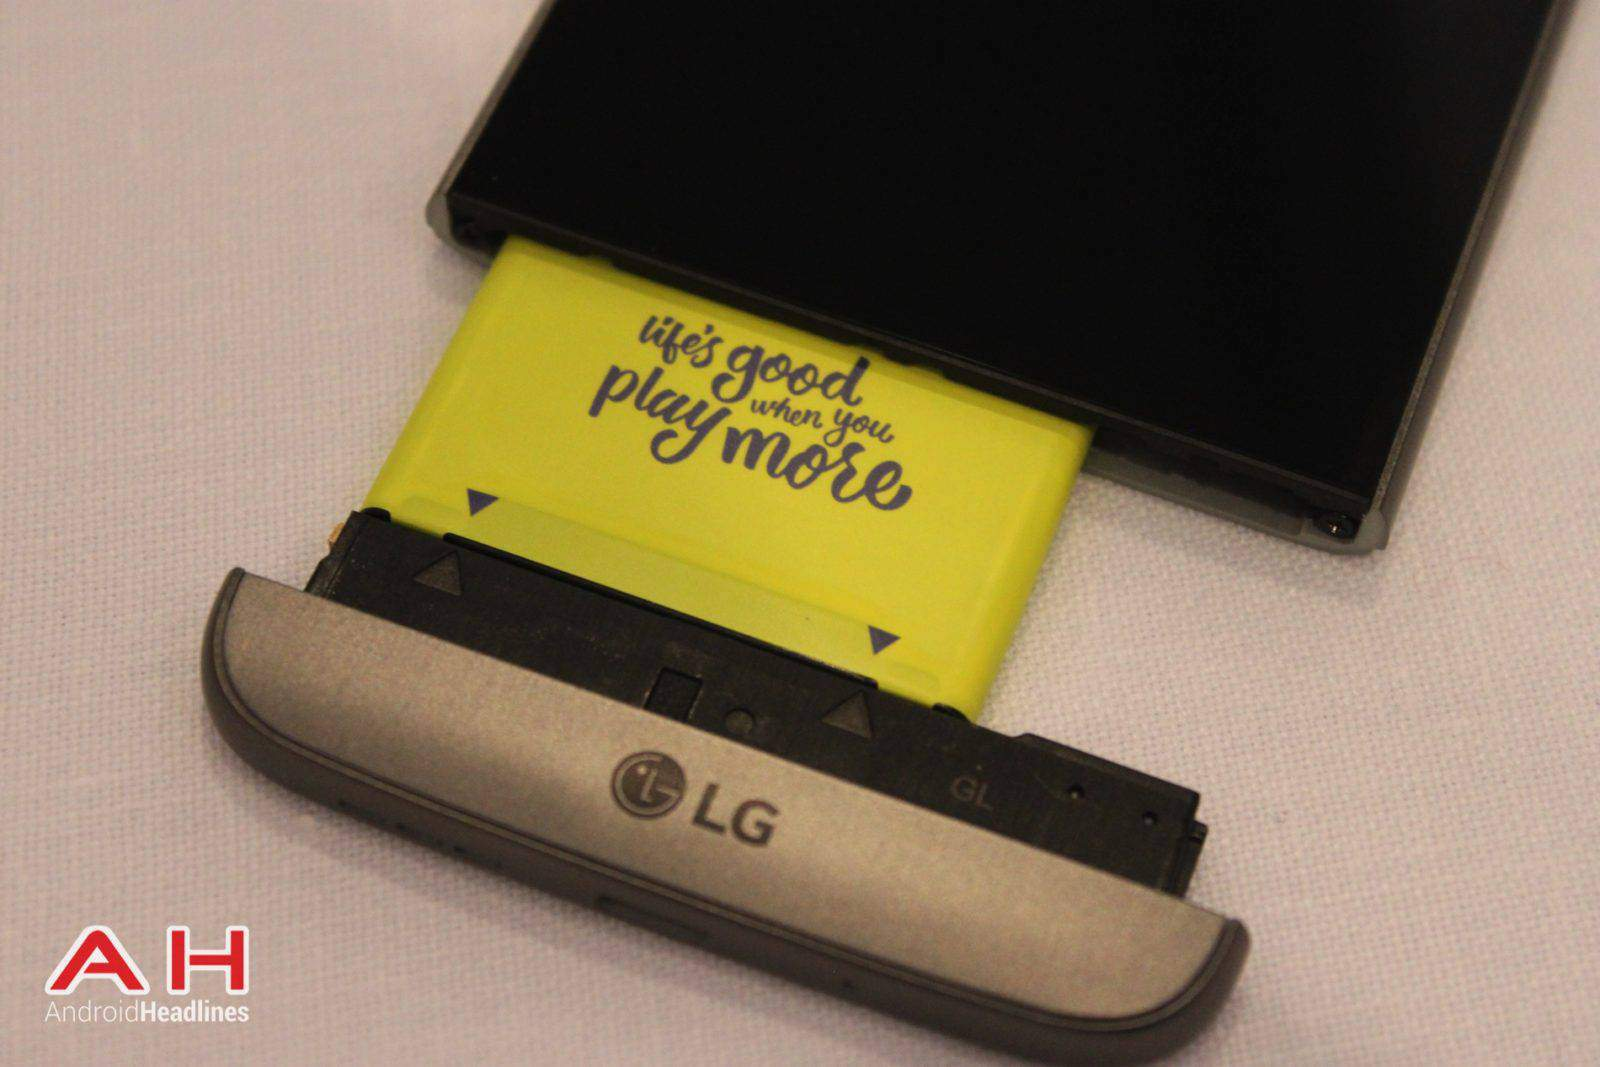 LG G5 Hands On MWC AH 12